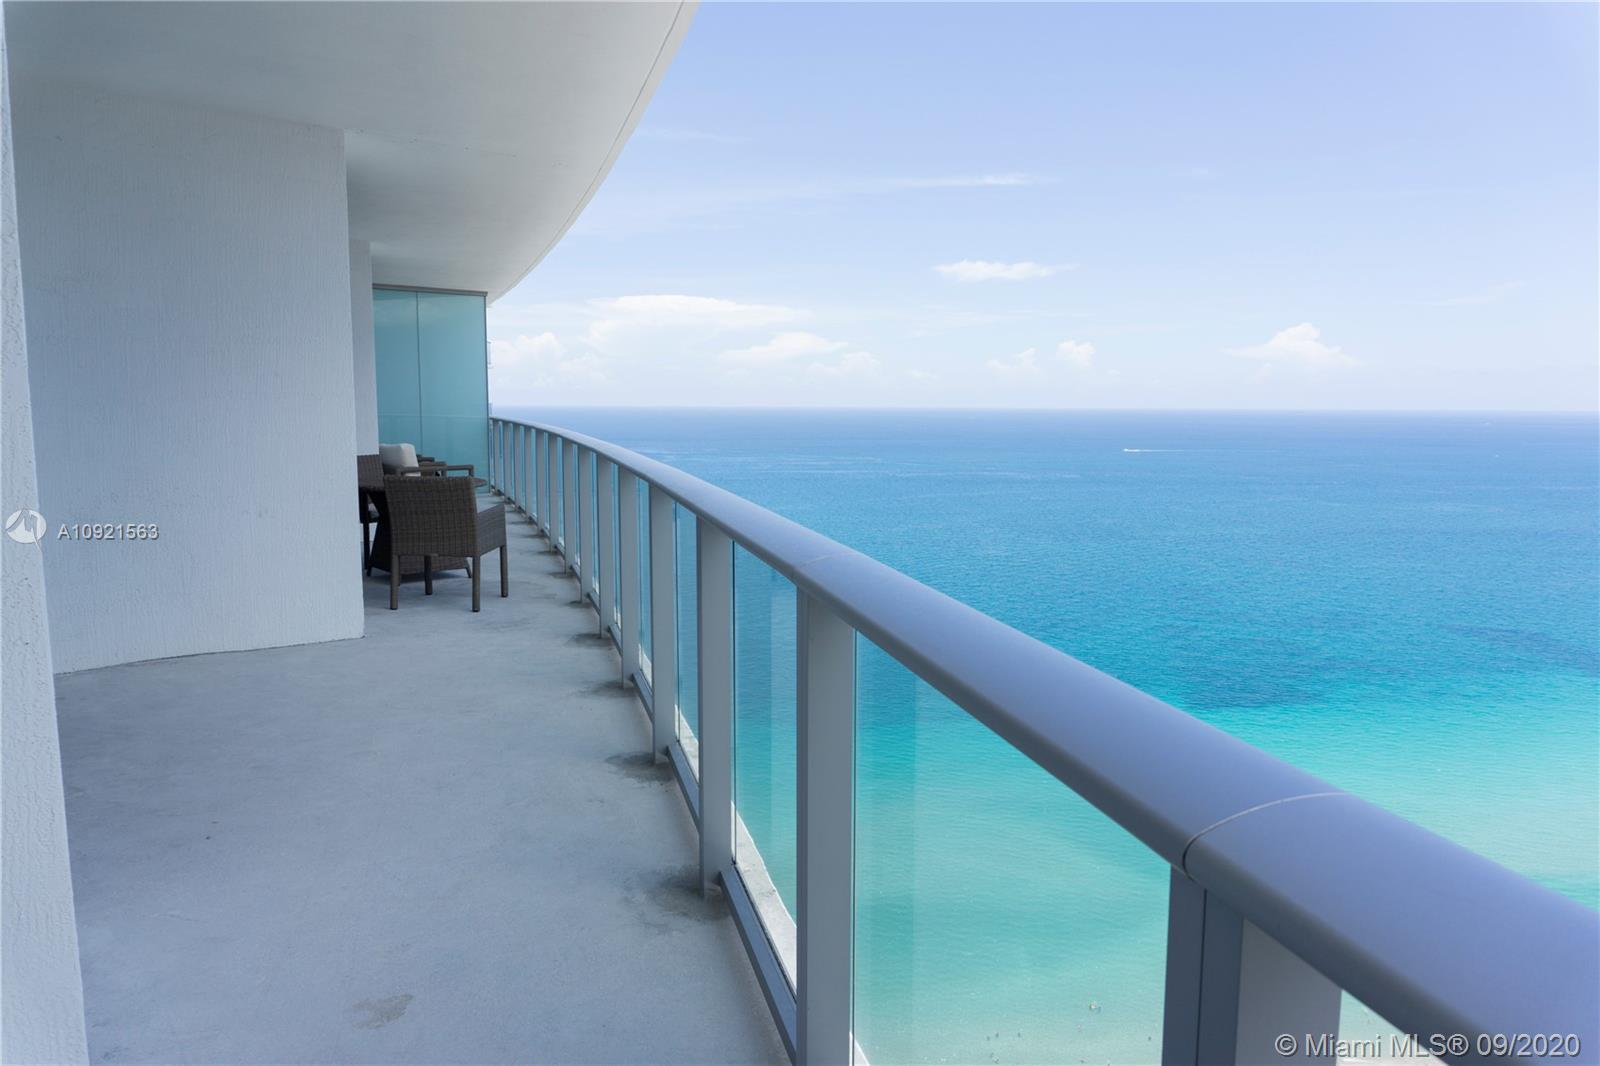 Wrap Around Balcony with Ocean views and City and canal Views . Unique apartment layout costumized